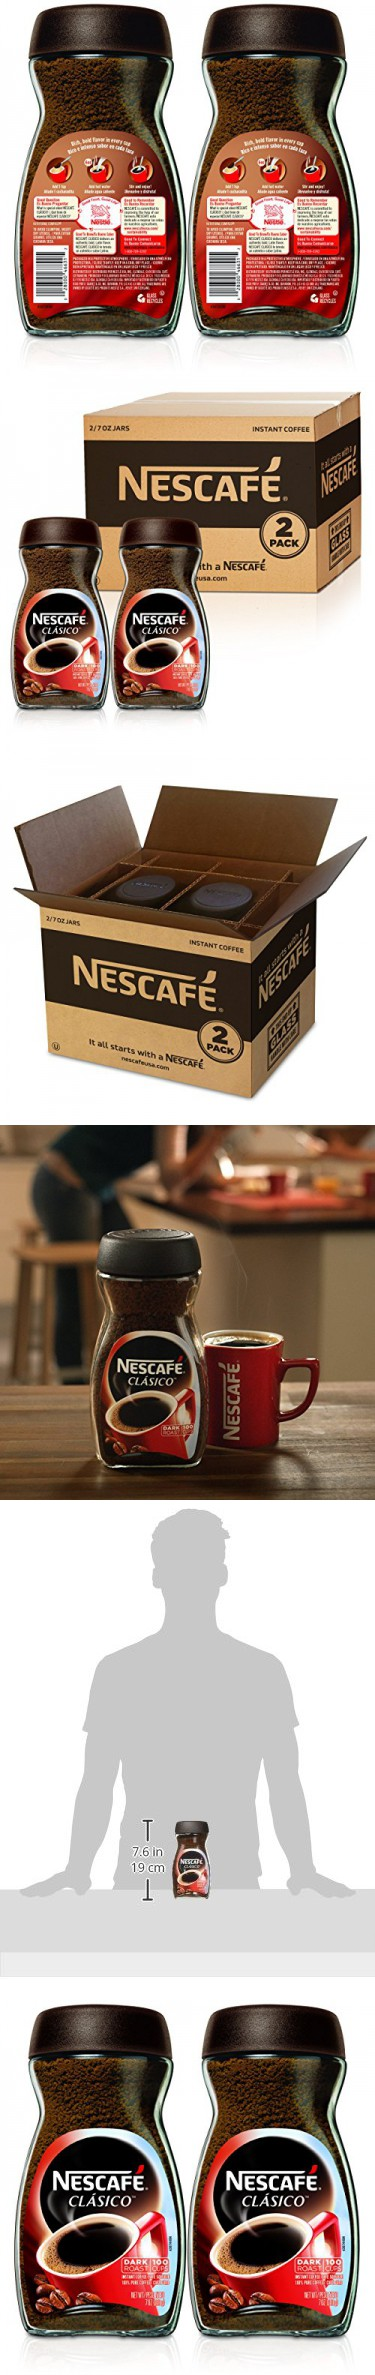 Nescafe Clasico Instant Coffee,7 Ounce (Pack of 2